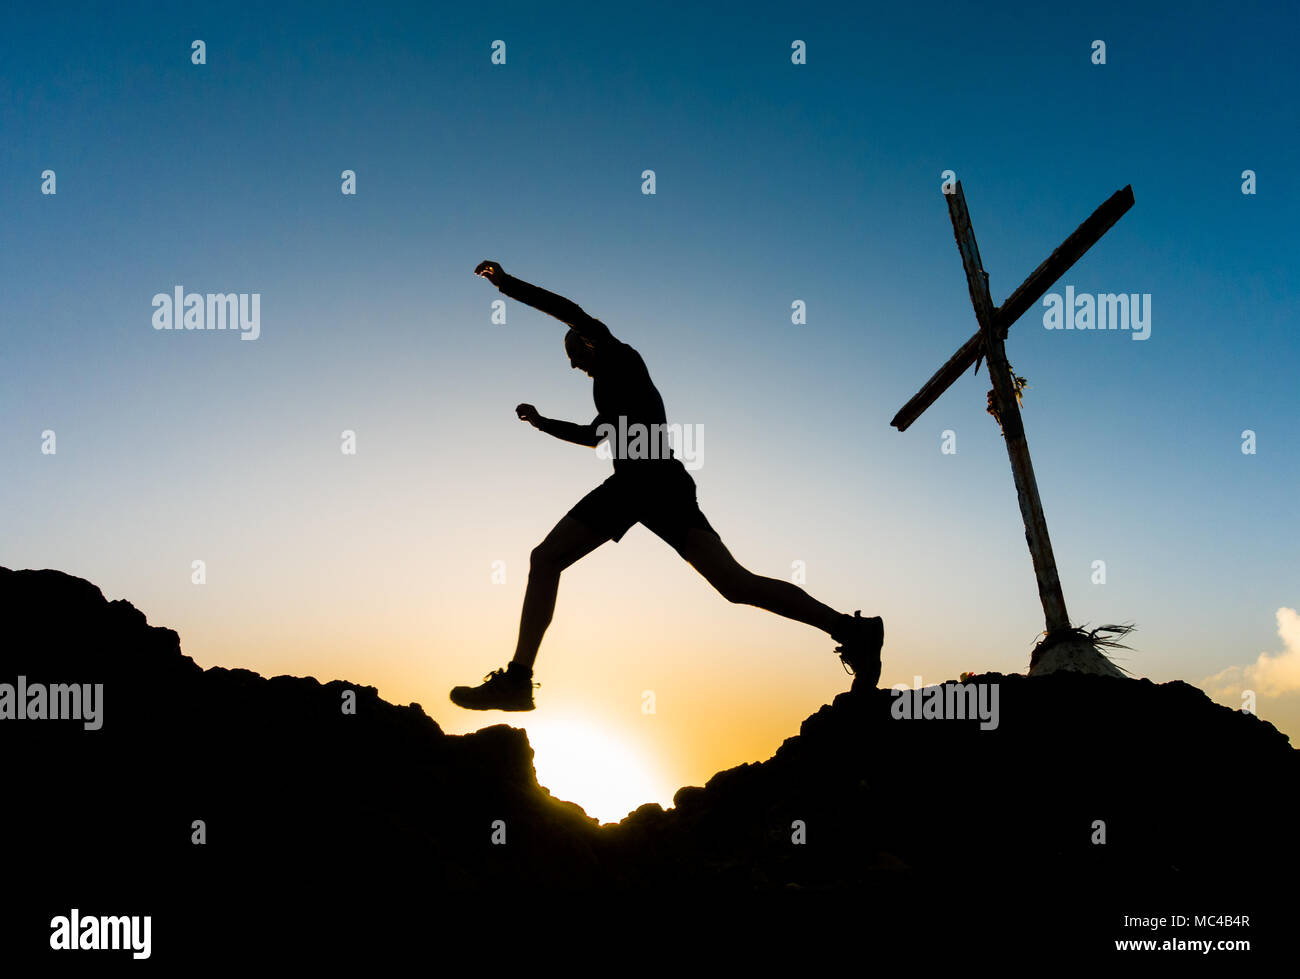 Gran Canaria, Canary Islands, Spain. 13th April, 2018. weather: A trail runner on mountain summit at sunrise on a glorious Friday the 13th on Gran Canaria. Credit: ALAN DAWSON/Alamy Live News - Stock Image